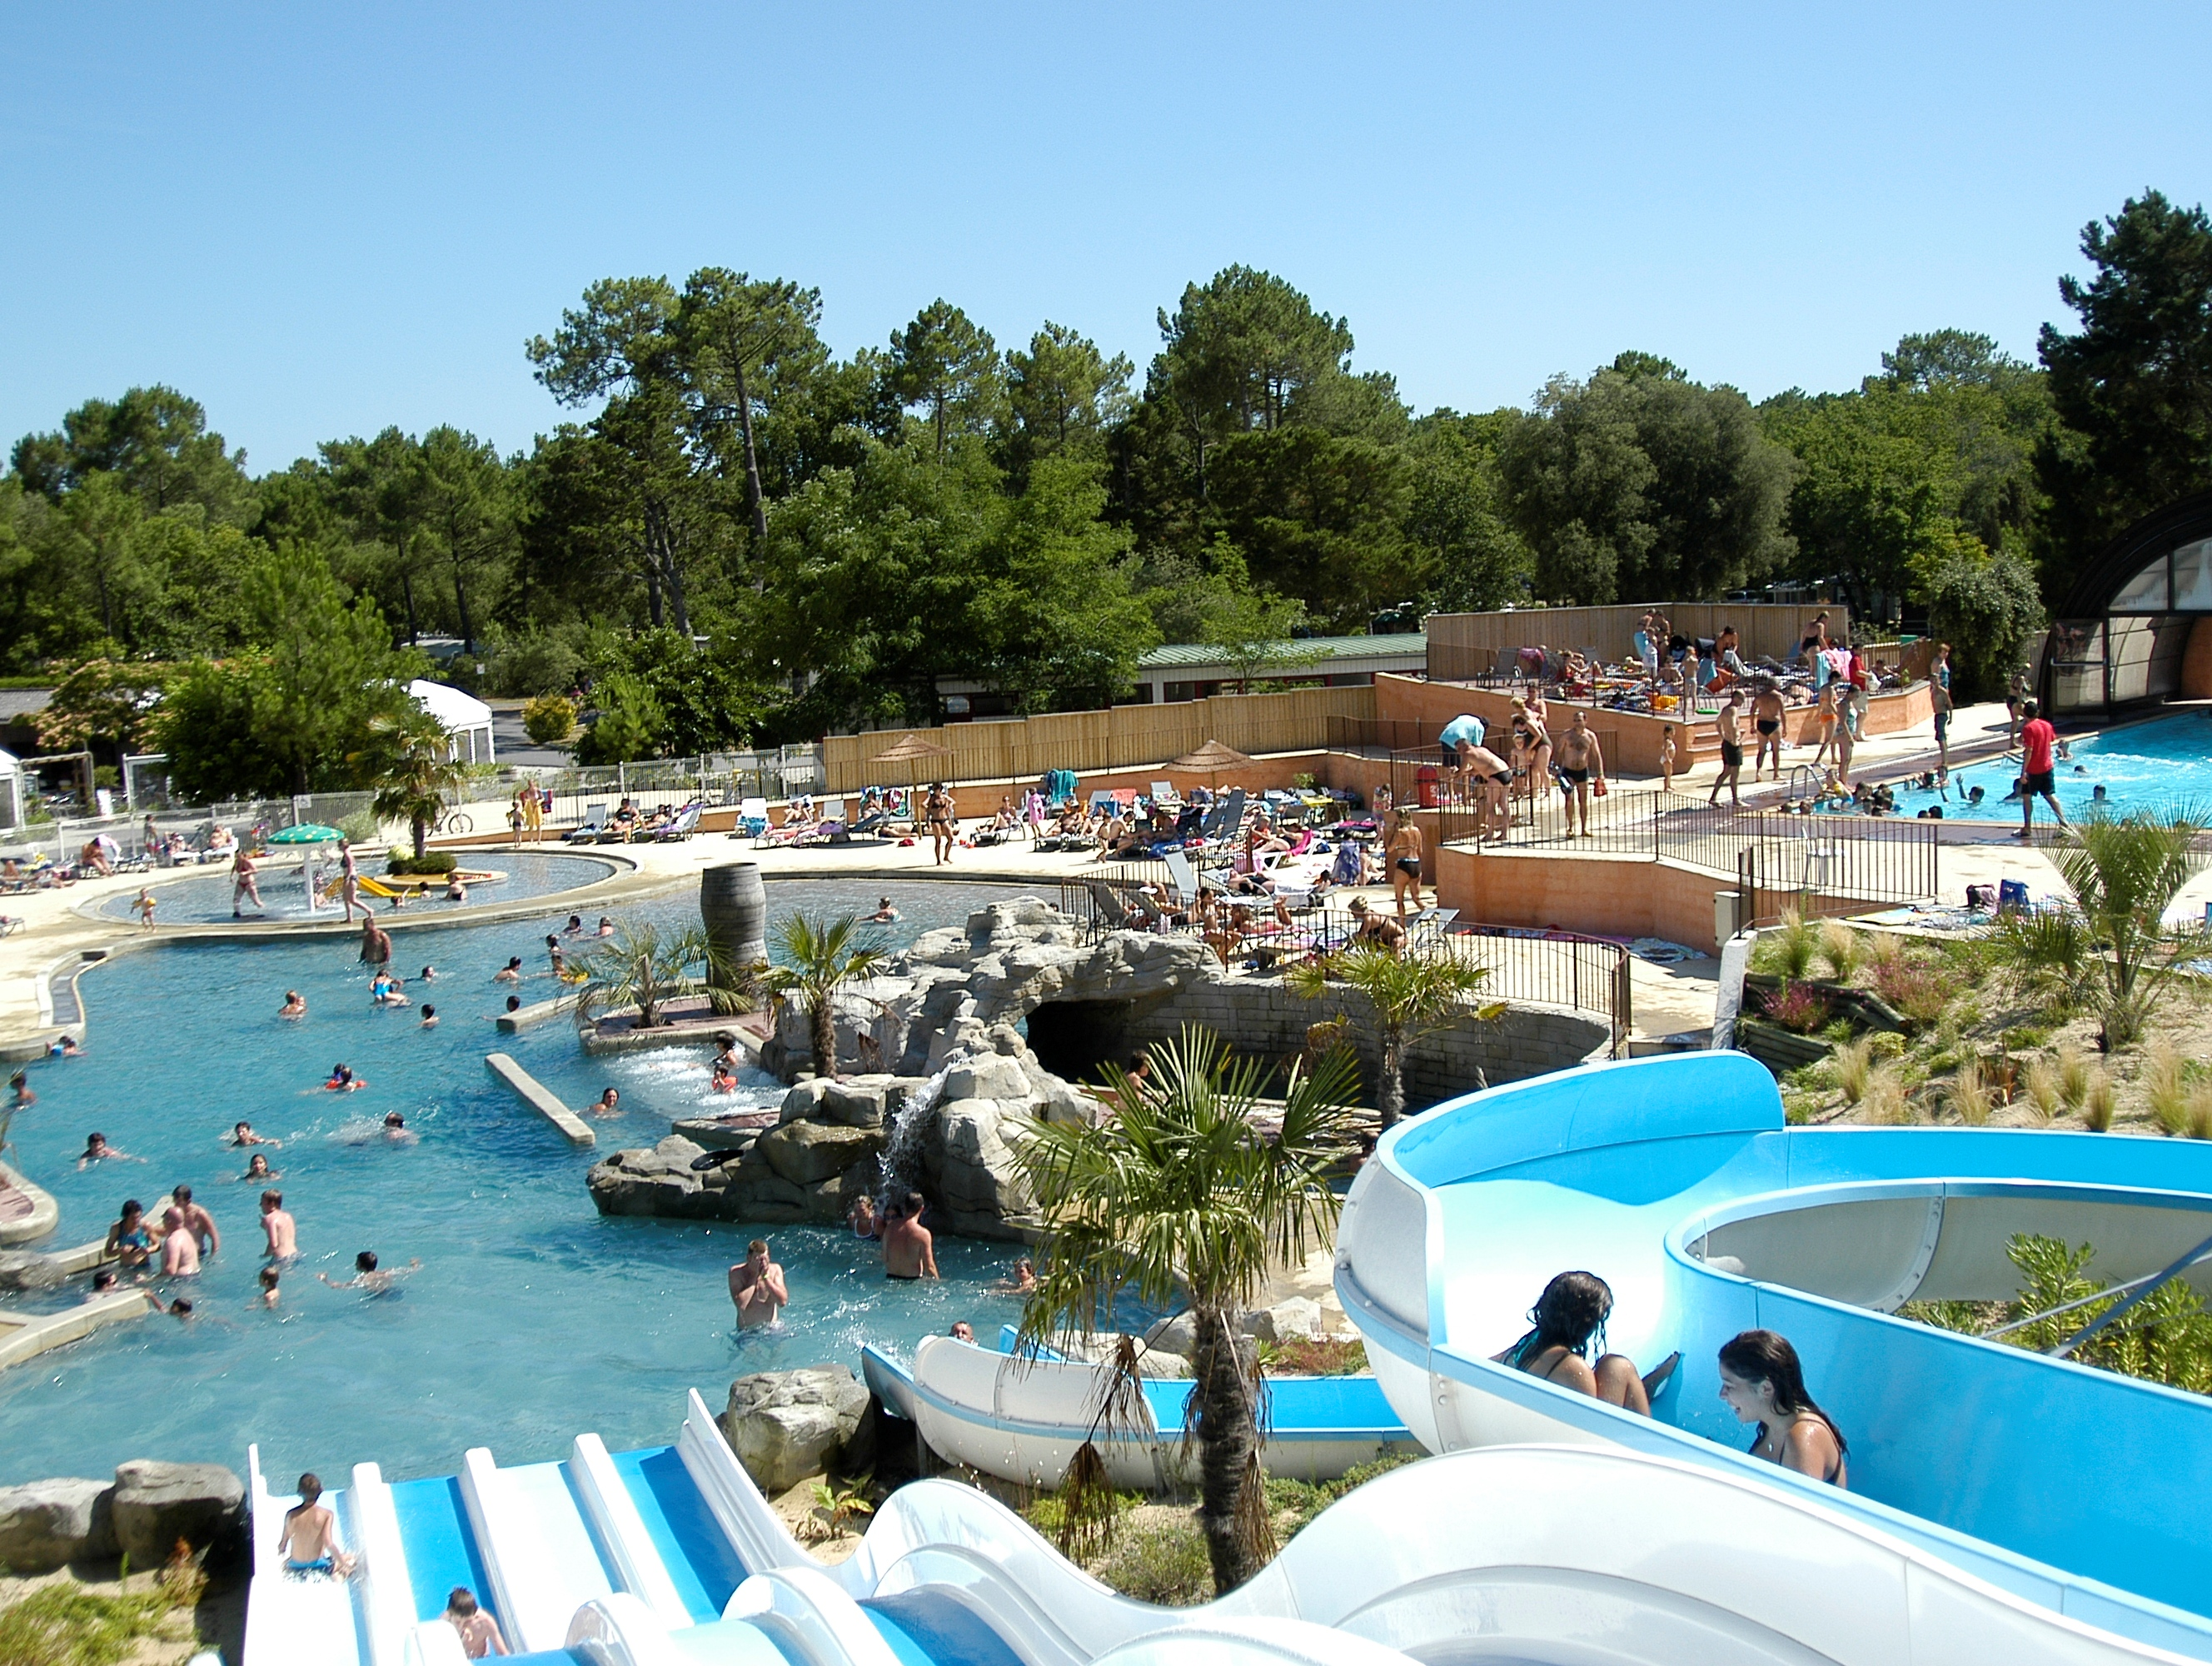 Vacance camping dans le sud vacance camping auvergne